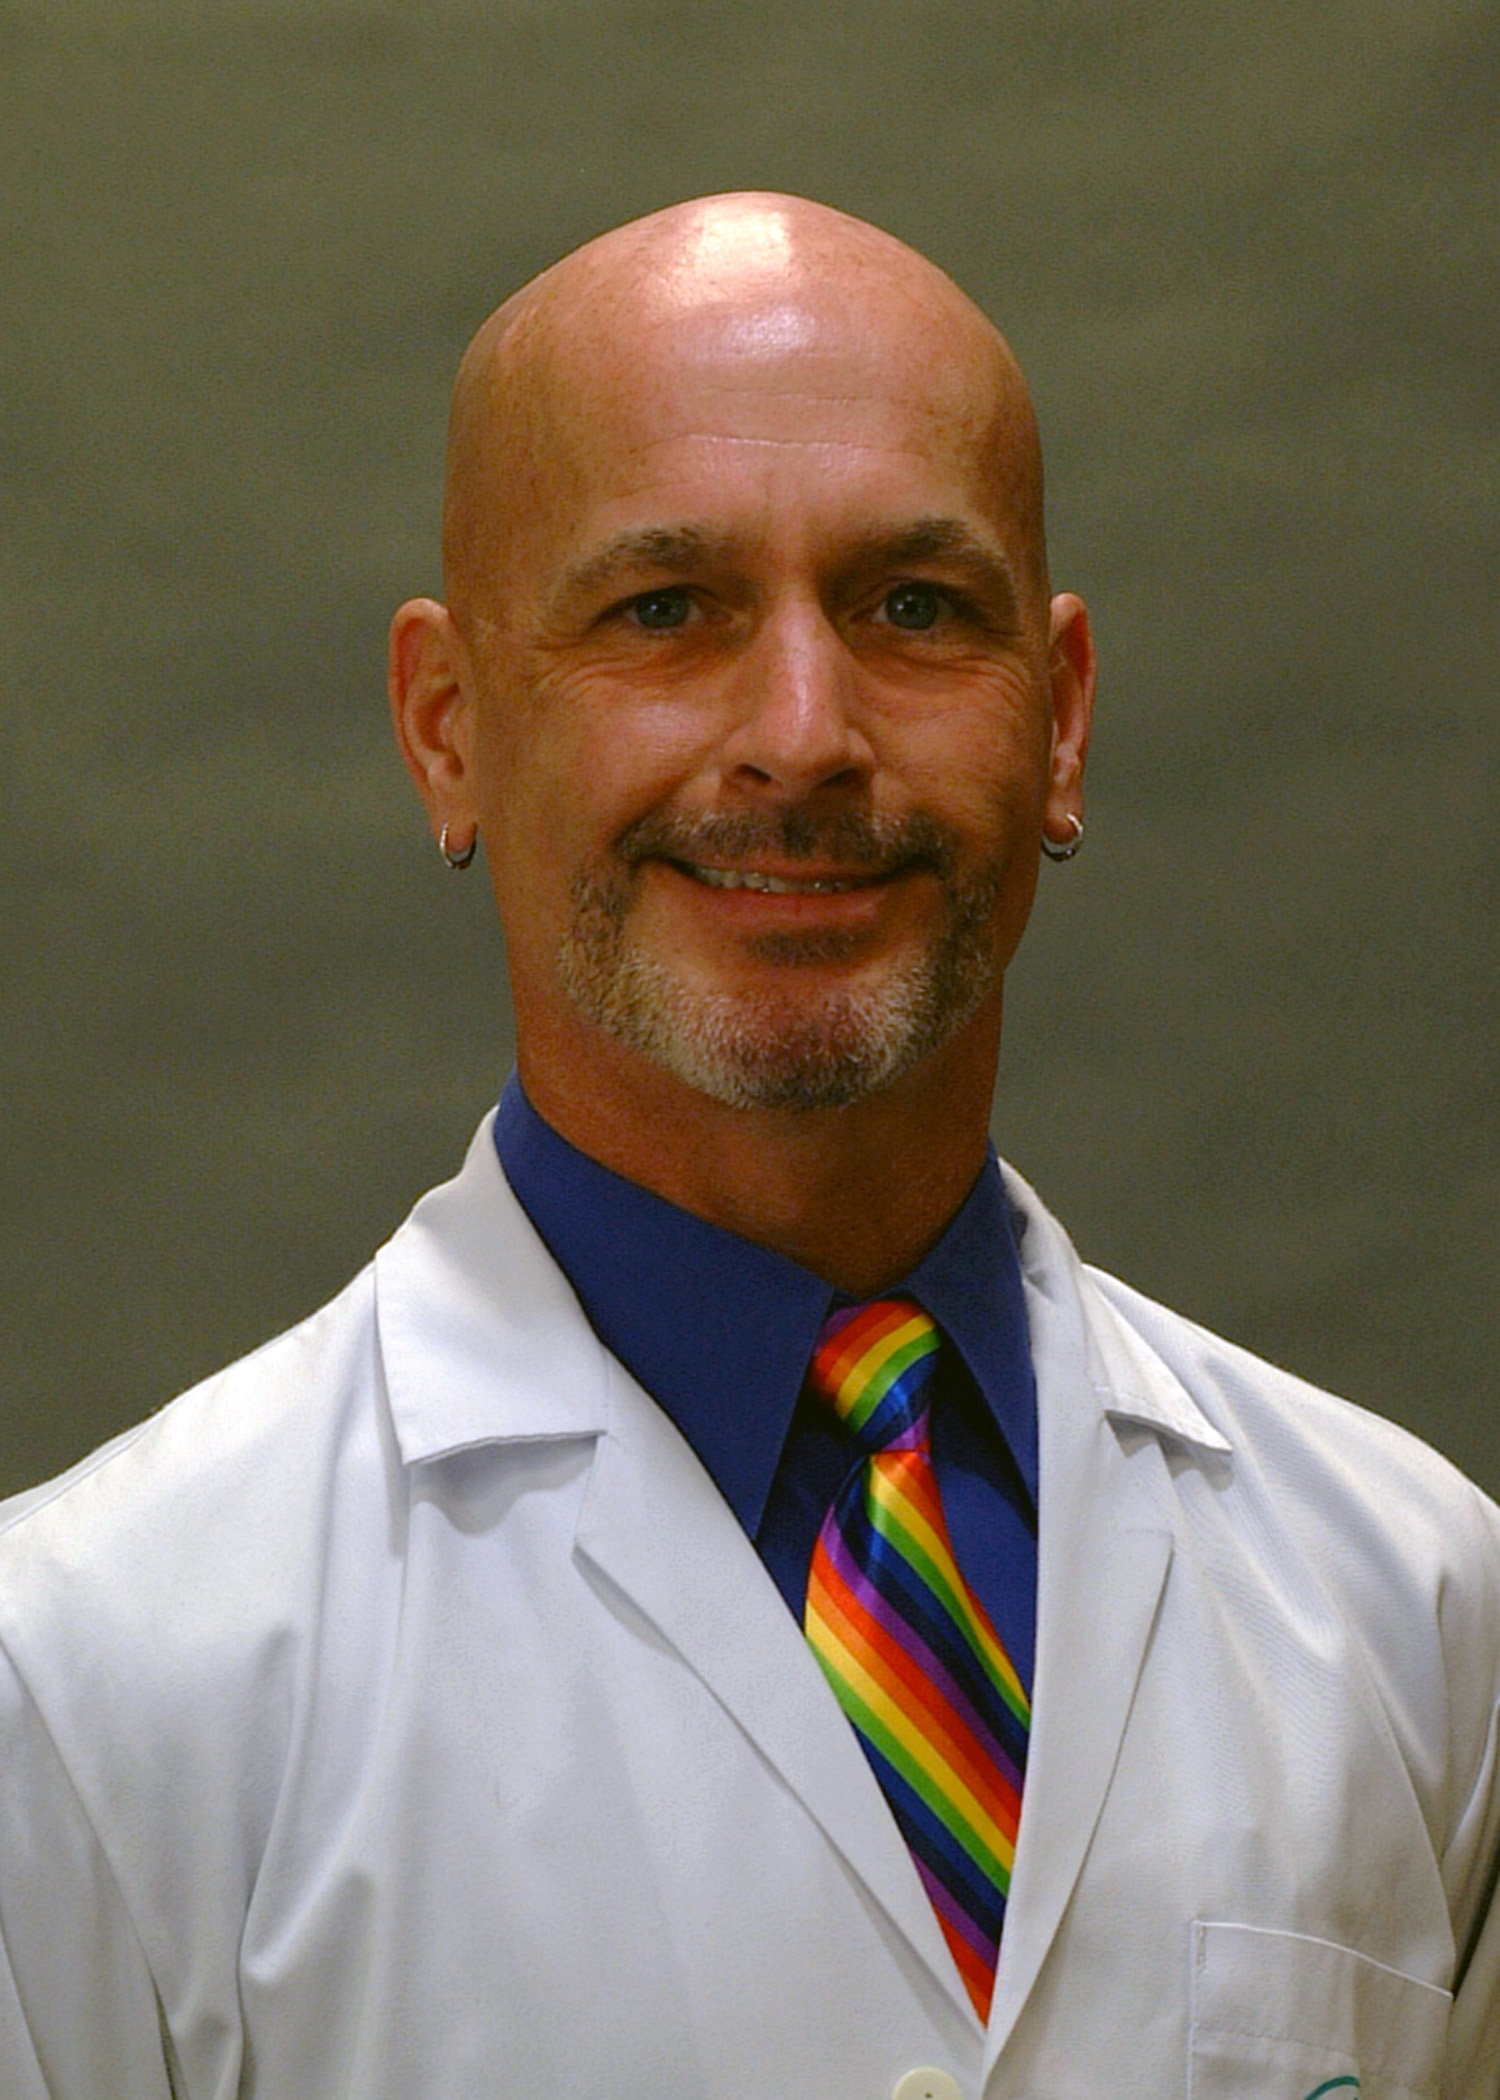 Dr. Mark Freeman